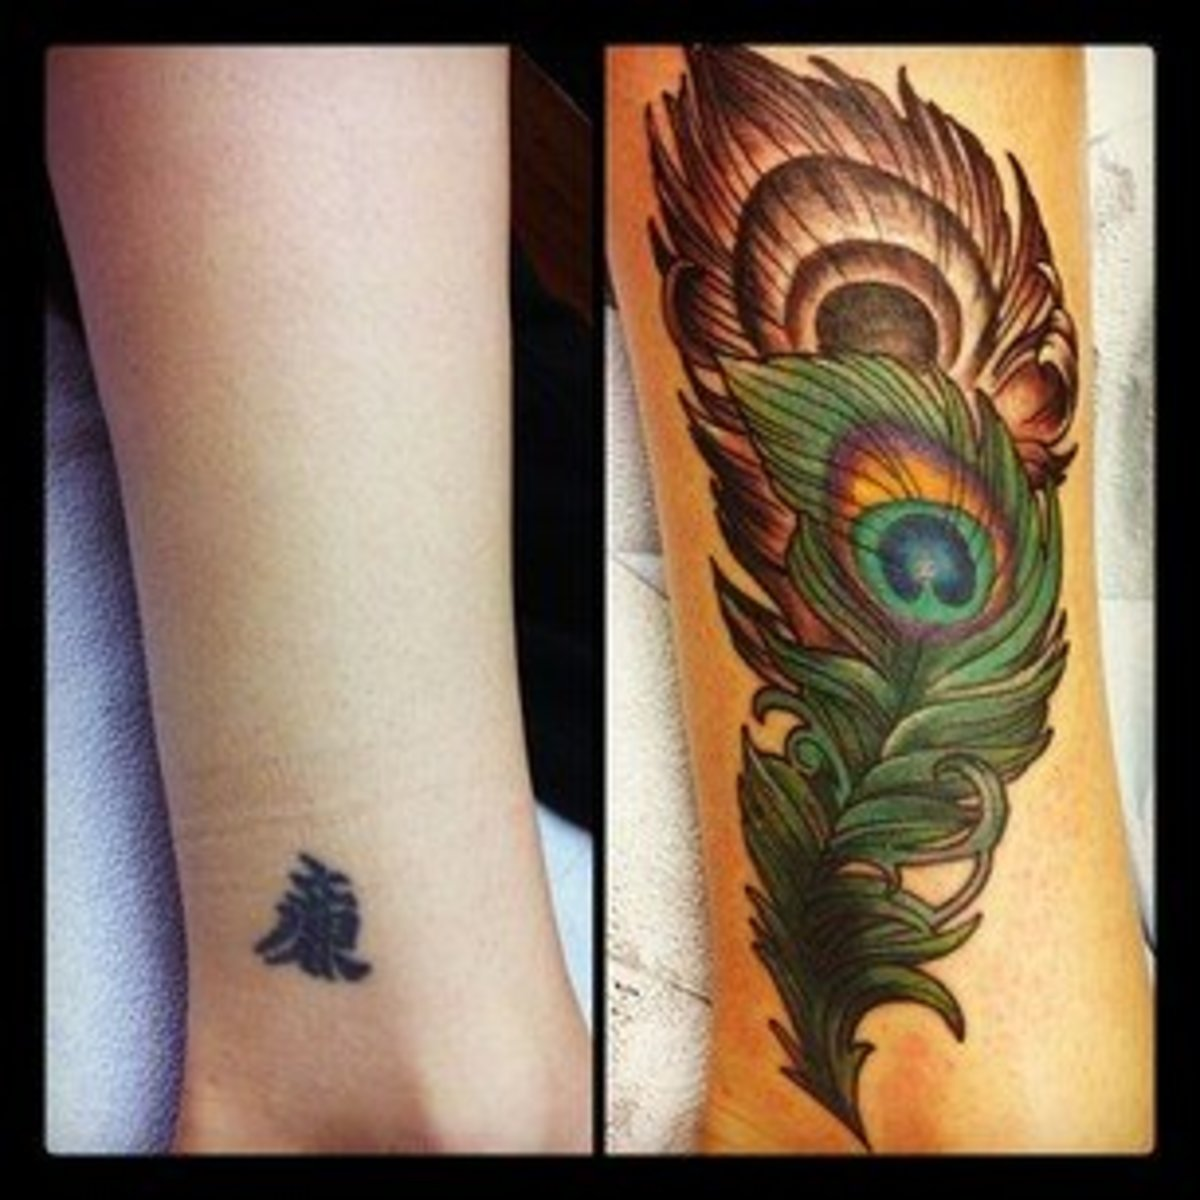 Often a cover-up tattoo will be much larger than the piece that is being hidden.